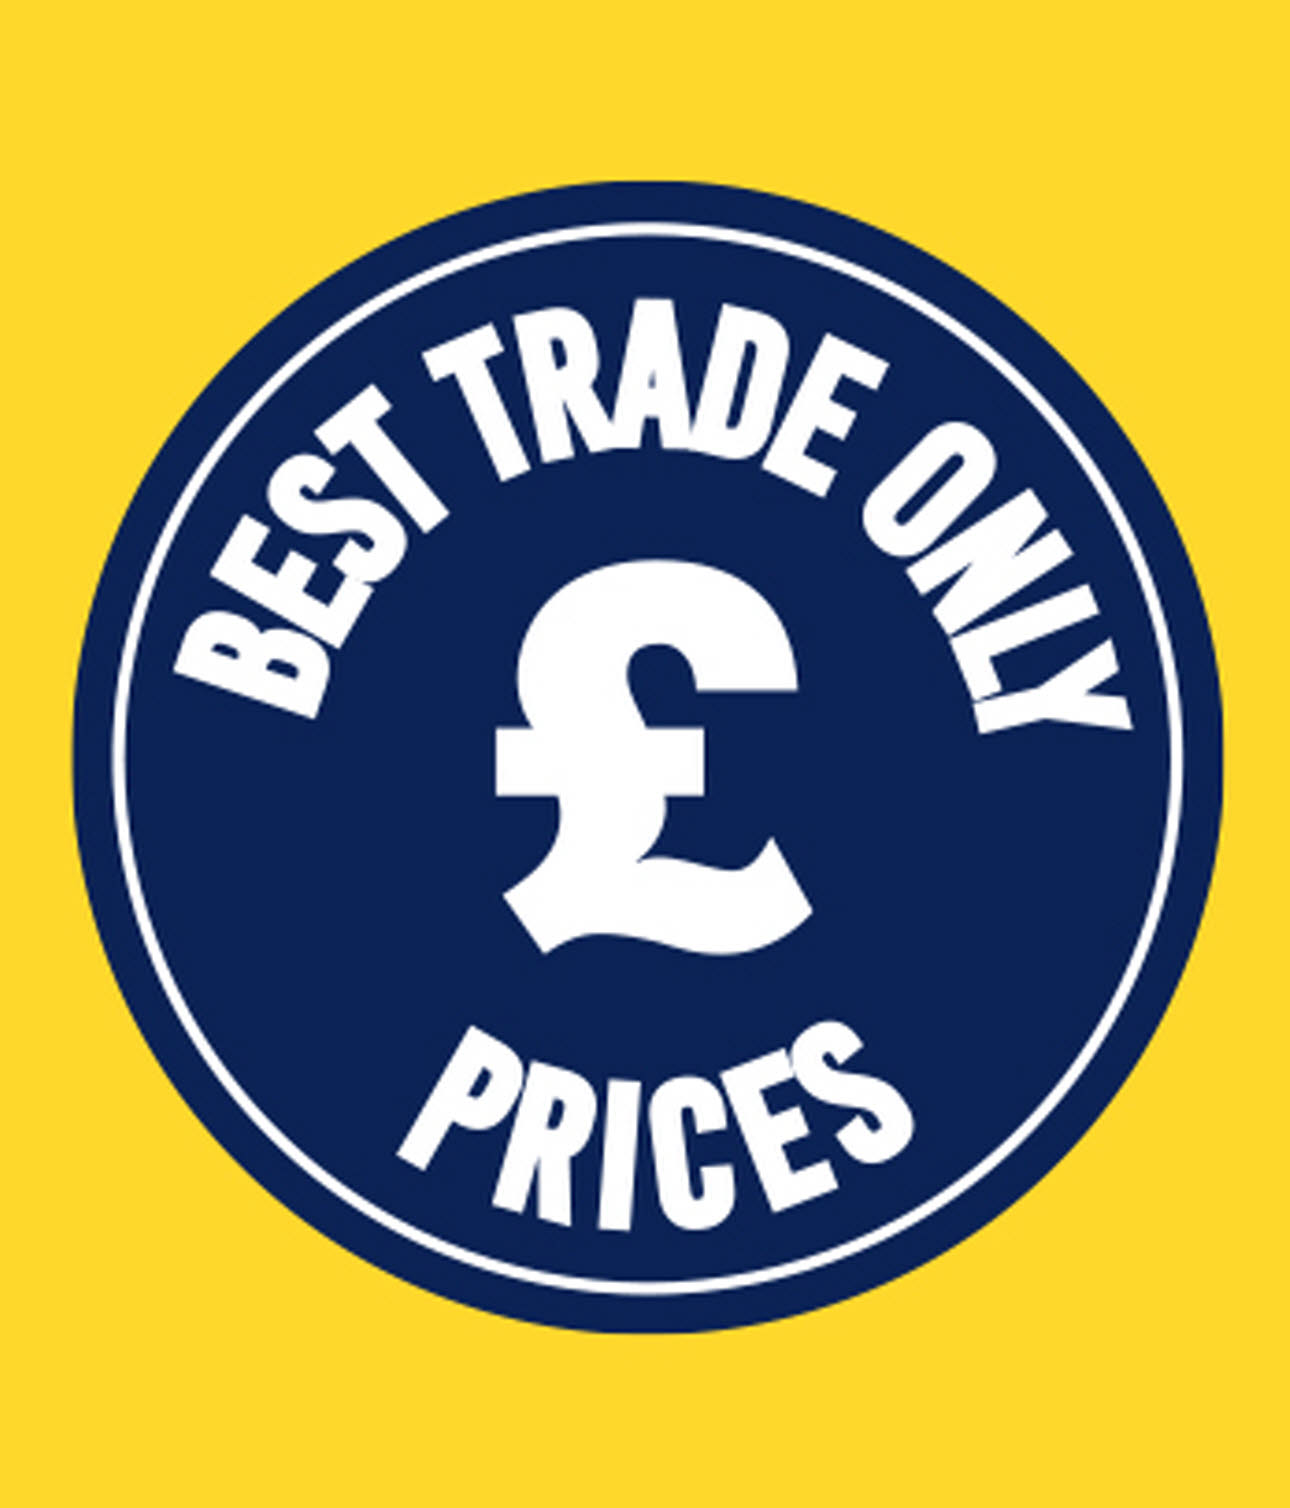 Magnet Trade - Best Trade Prices logo, yellow, blue & white